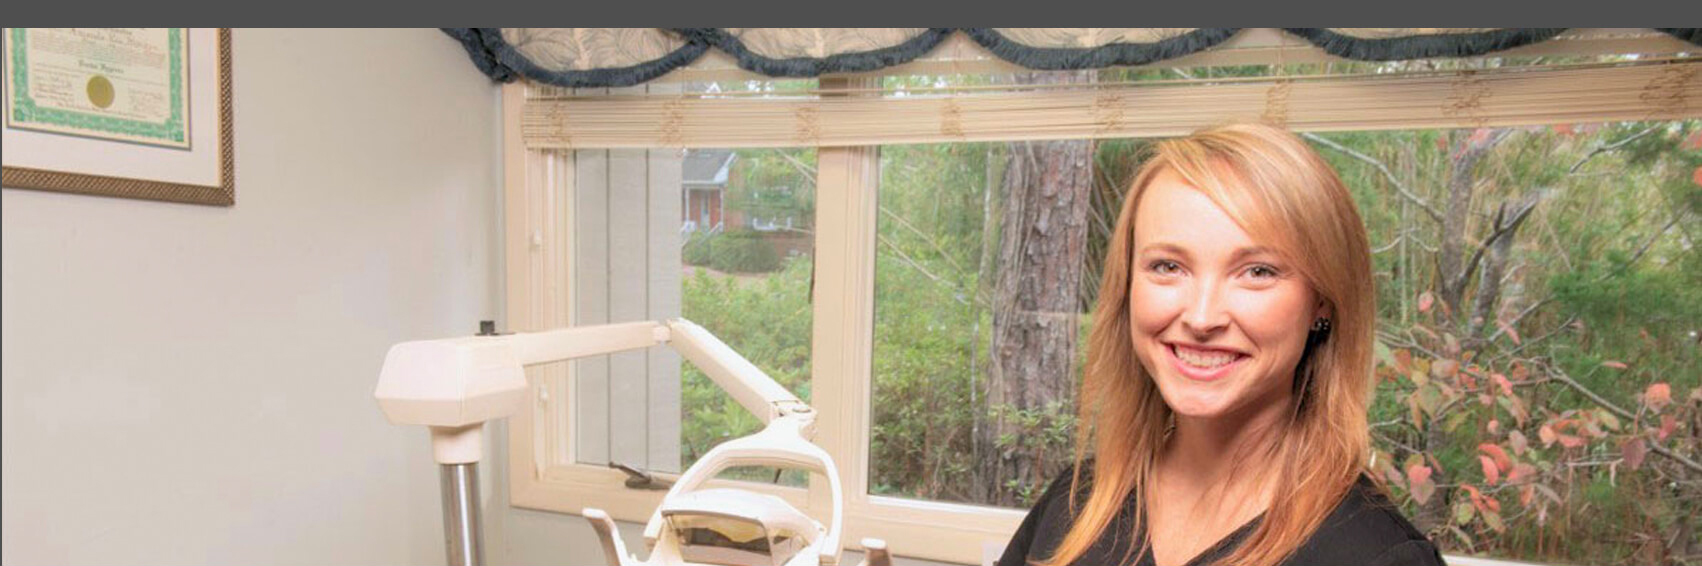 Comprehensive Dental Services offered at Gregory B. Garrett, DDS in Wilmington, NC.